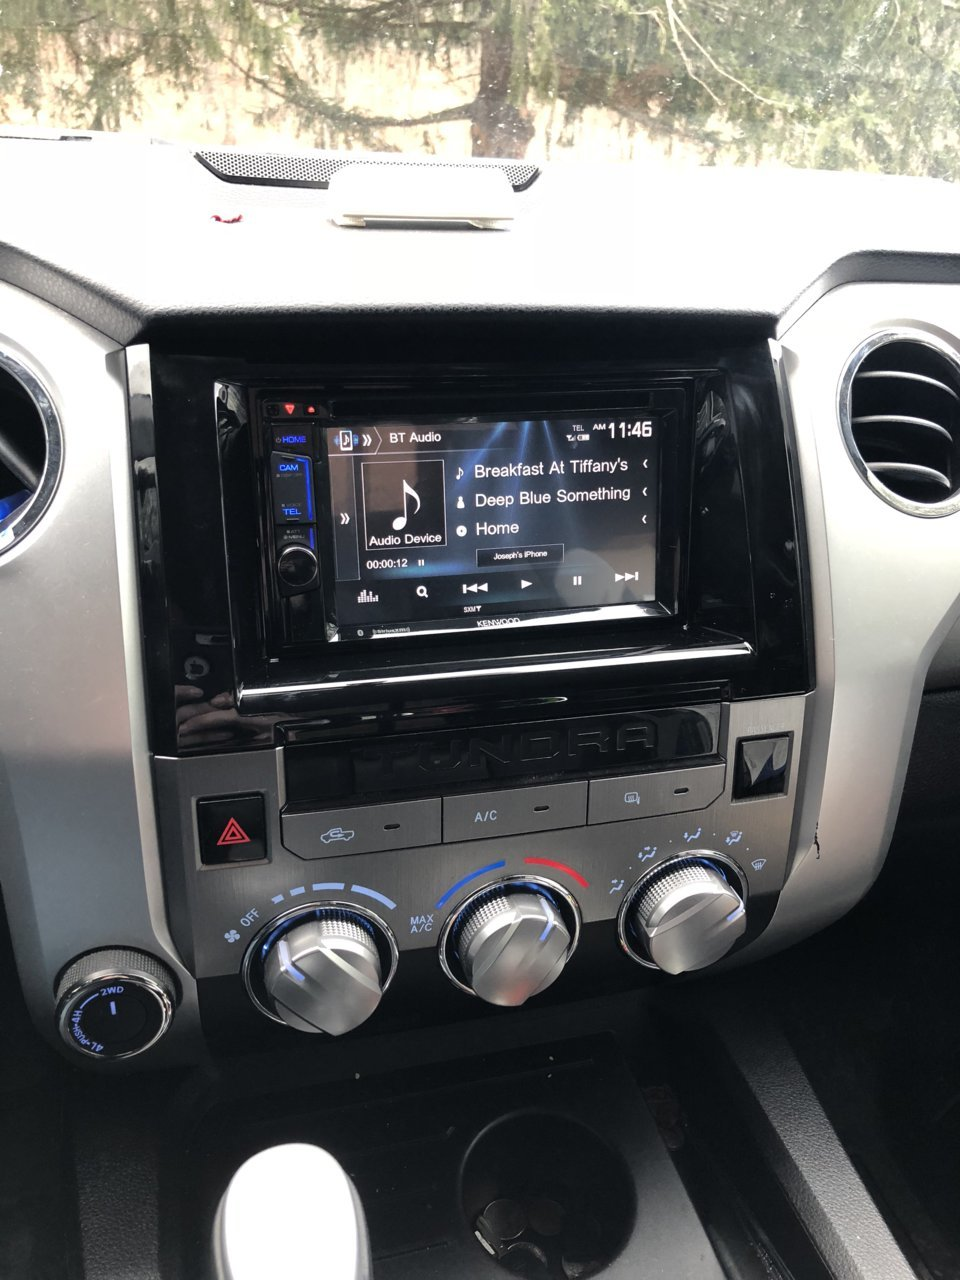 Head unit randomly freezes up and resets | Toyota Tundra Forum